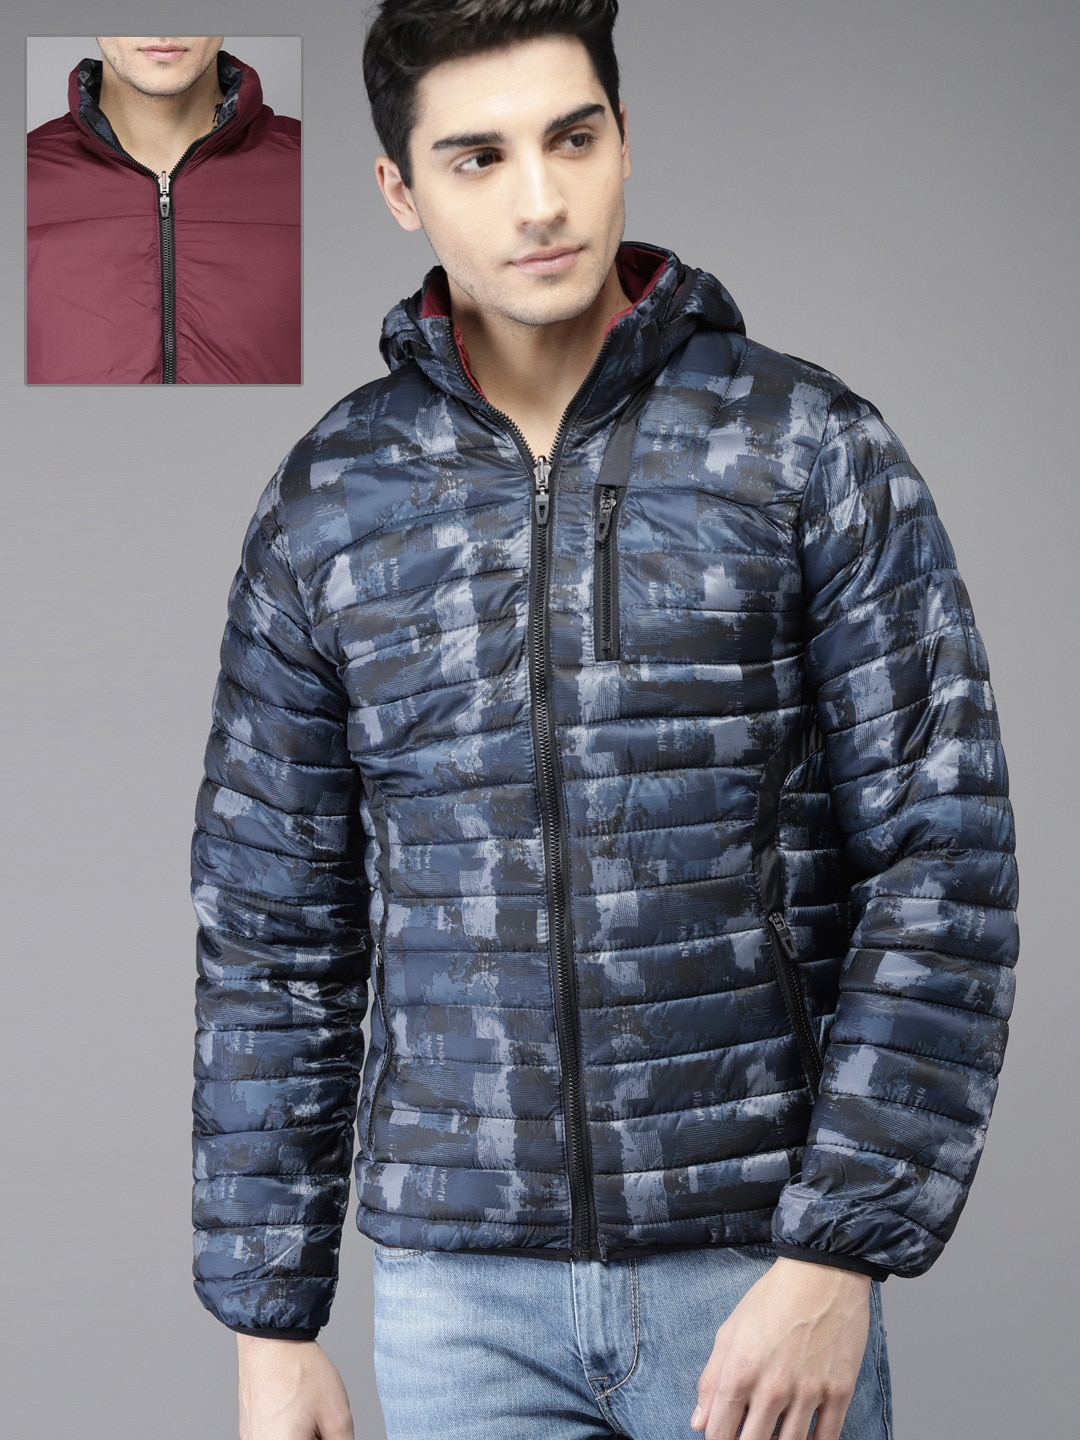 a8004eecc946 Reversible Jackets - Buy Reversible Jackets online in India